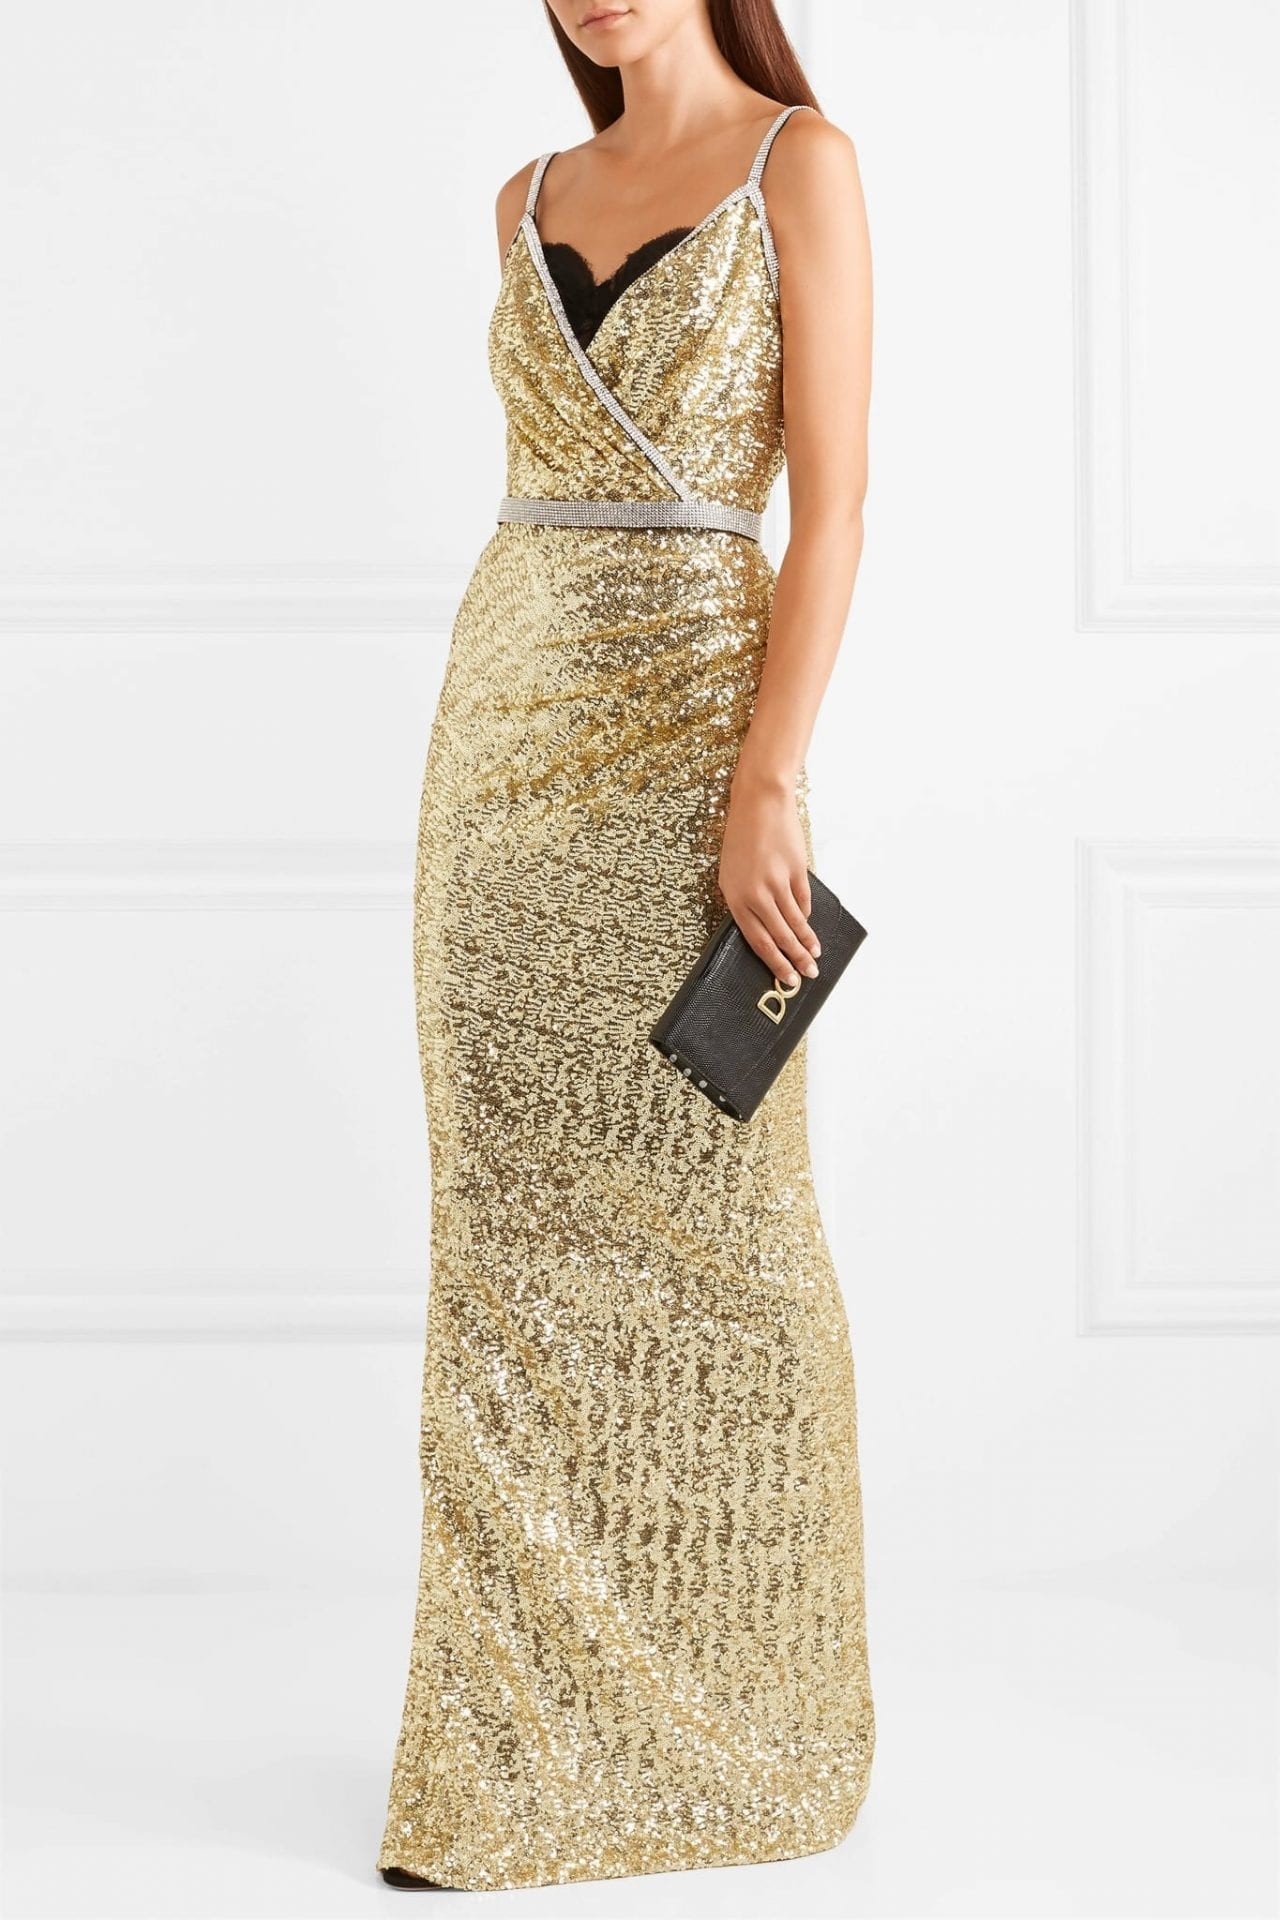 2f37b3c073f DOLCE   GABBANA Crystal-Embellished Sequined Stretch-Satin Gold Gown